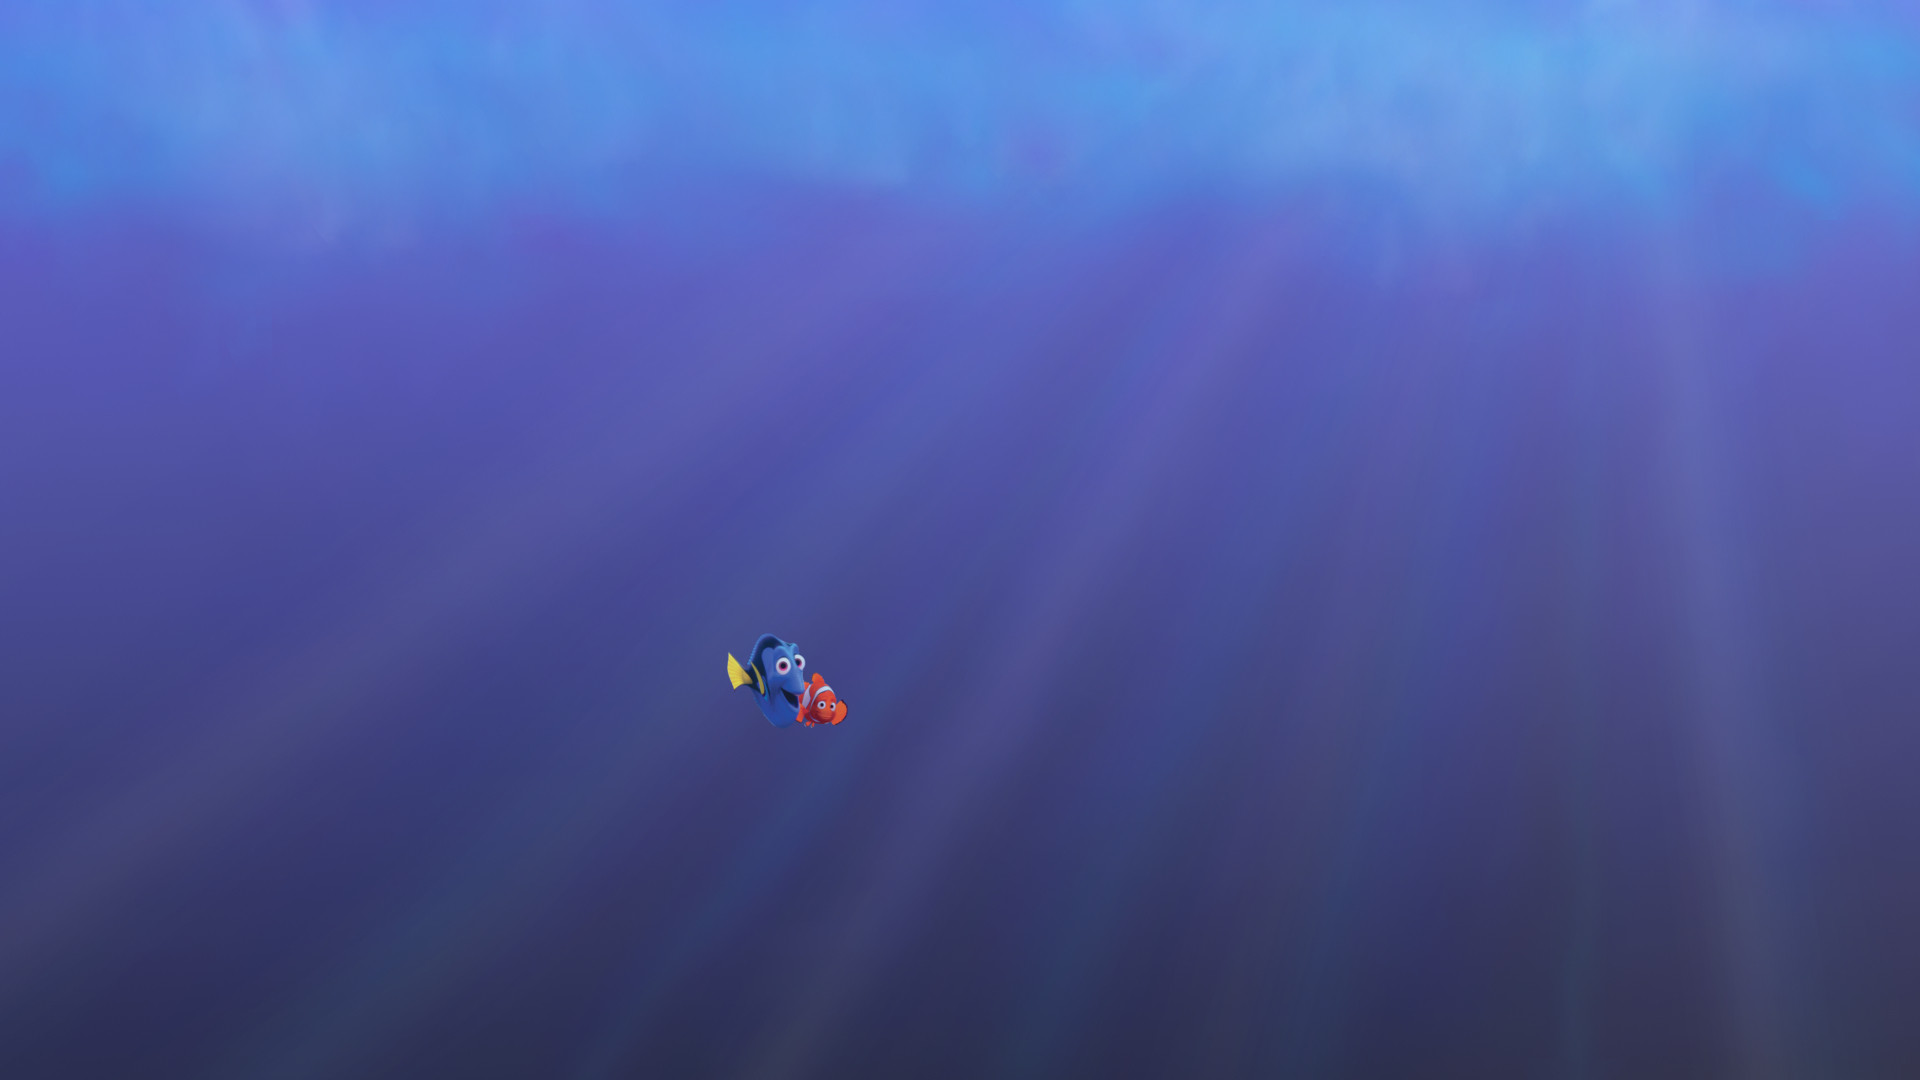 finding nemo wallpaper ·①